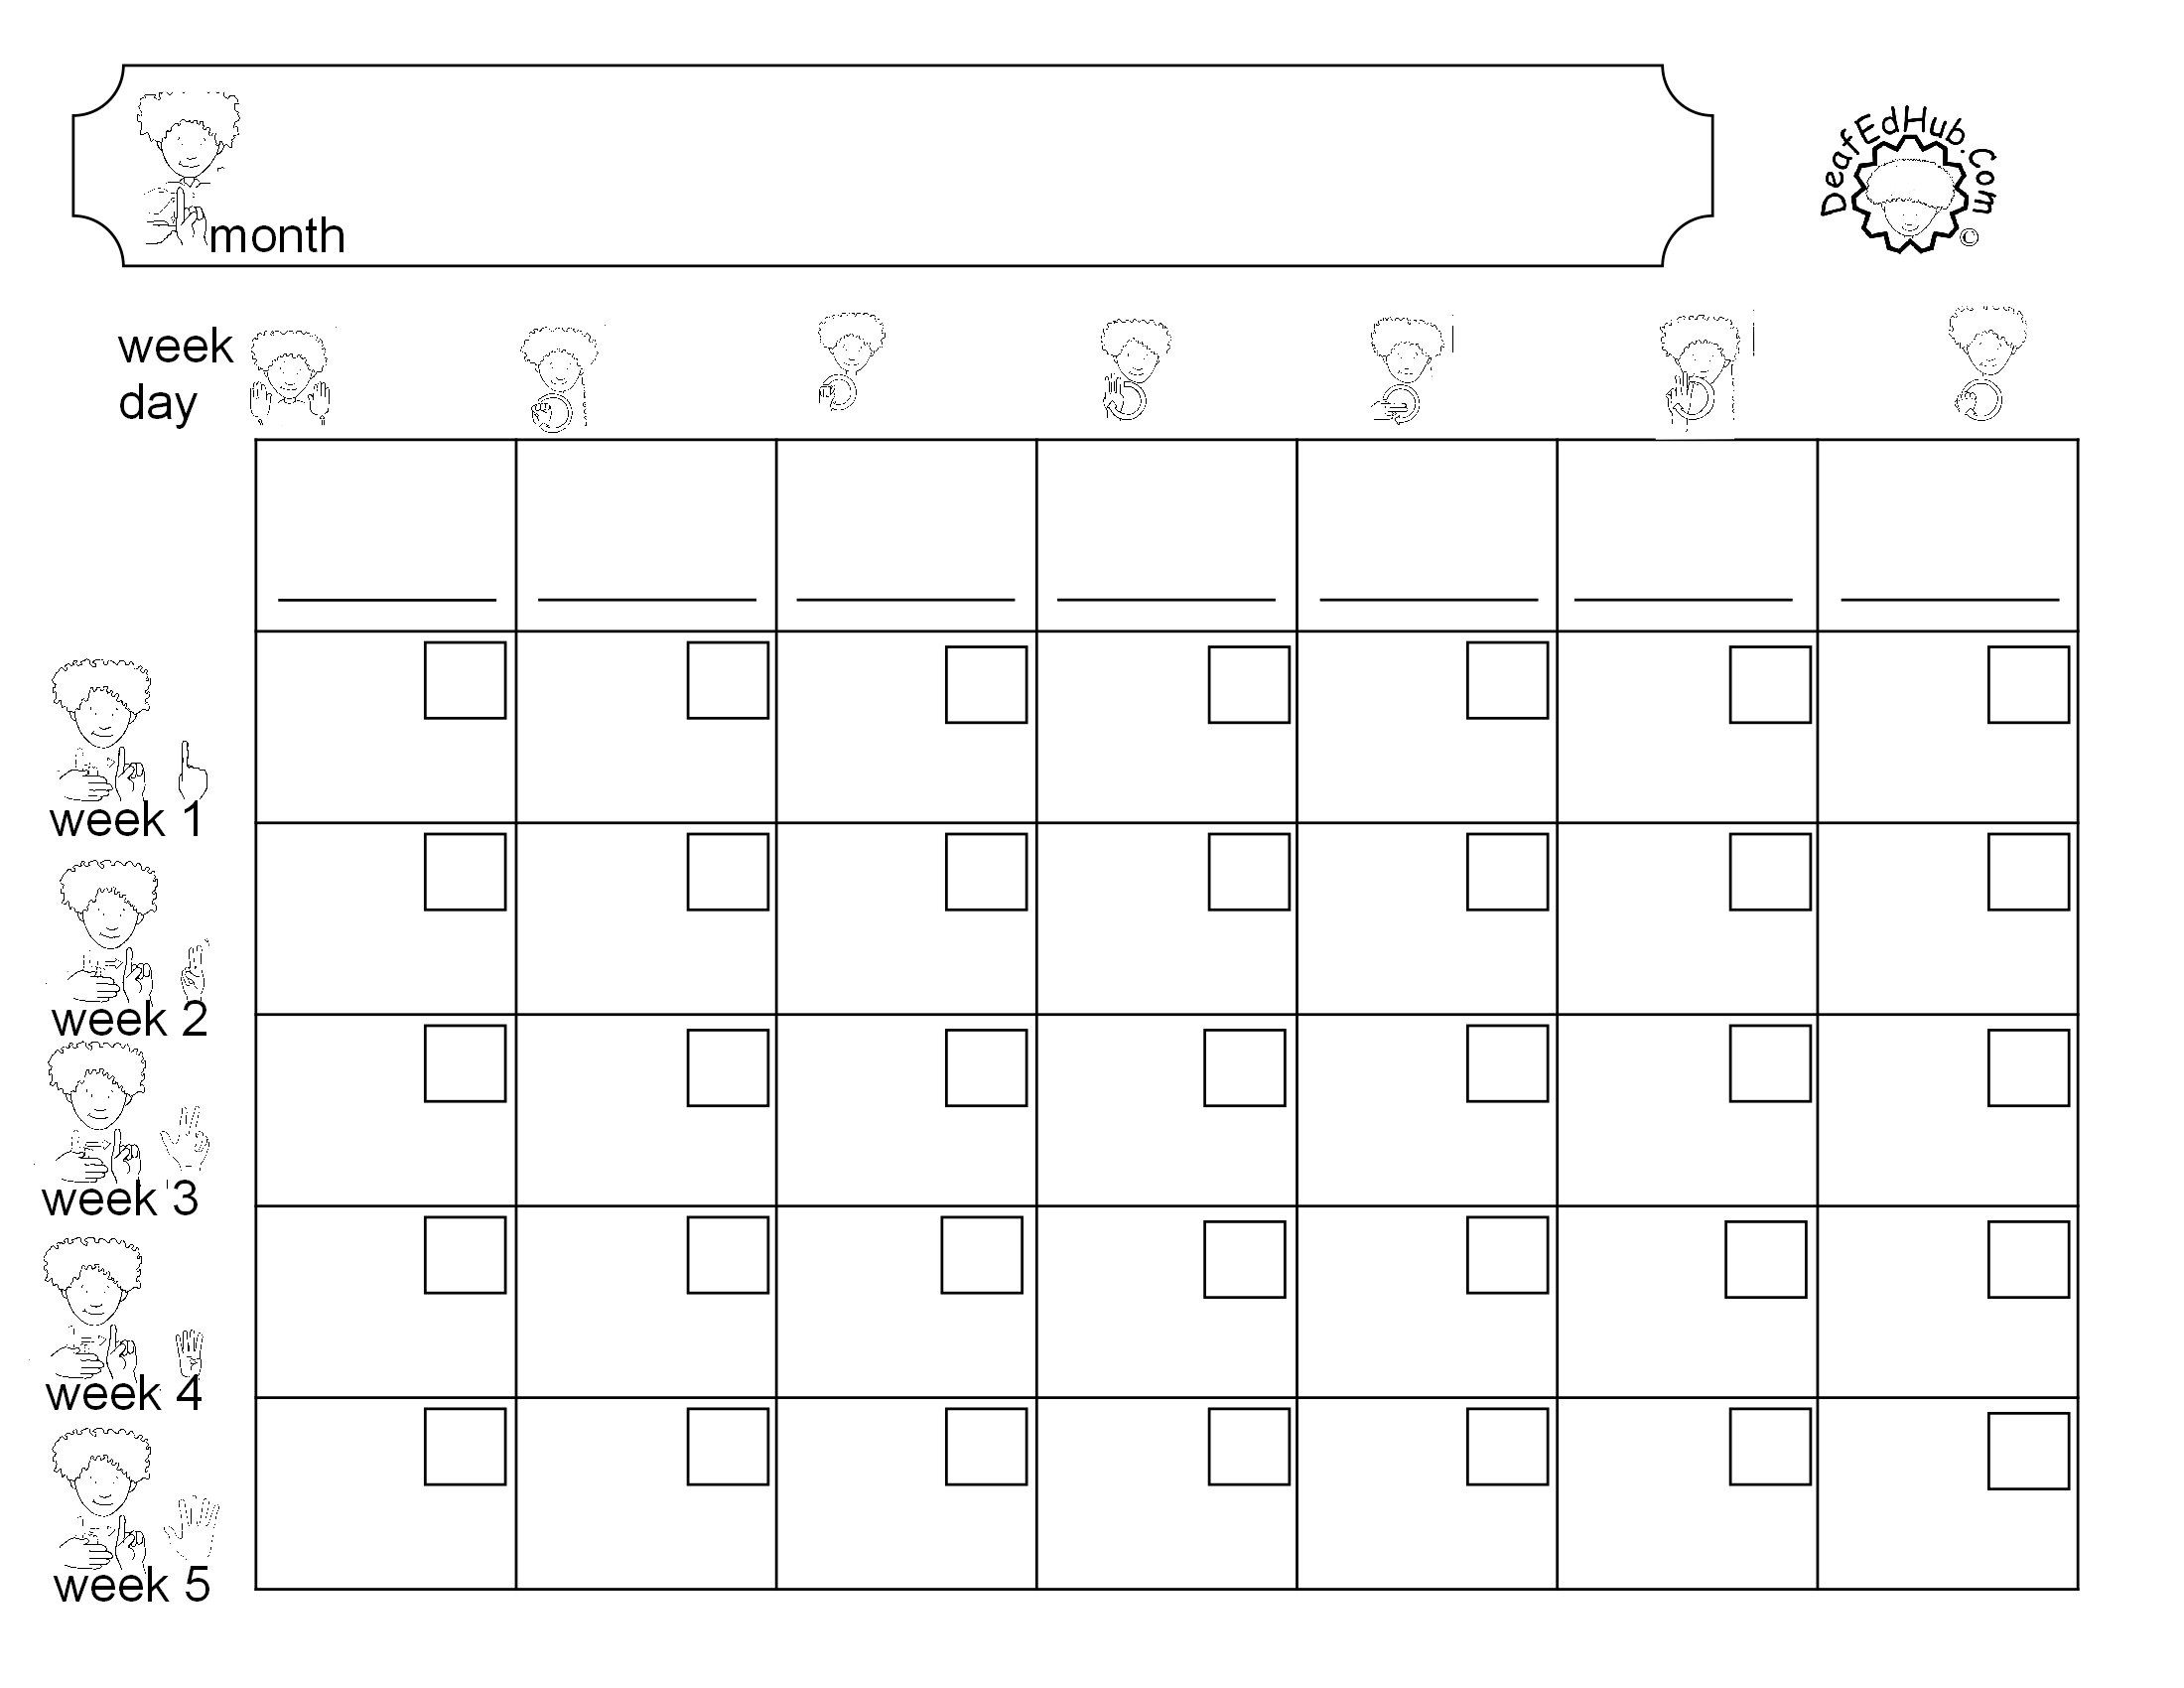 New Student Calendar Is In Designed Specifically For